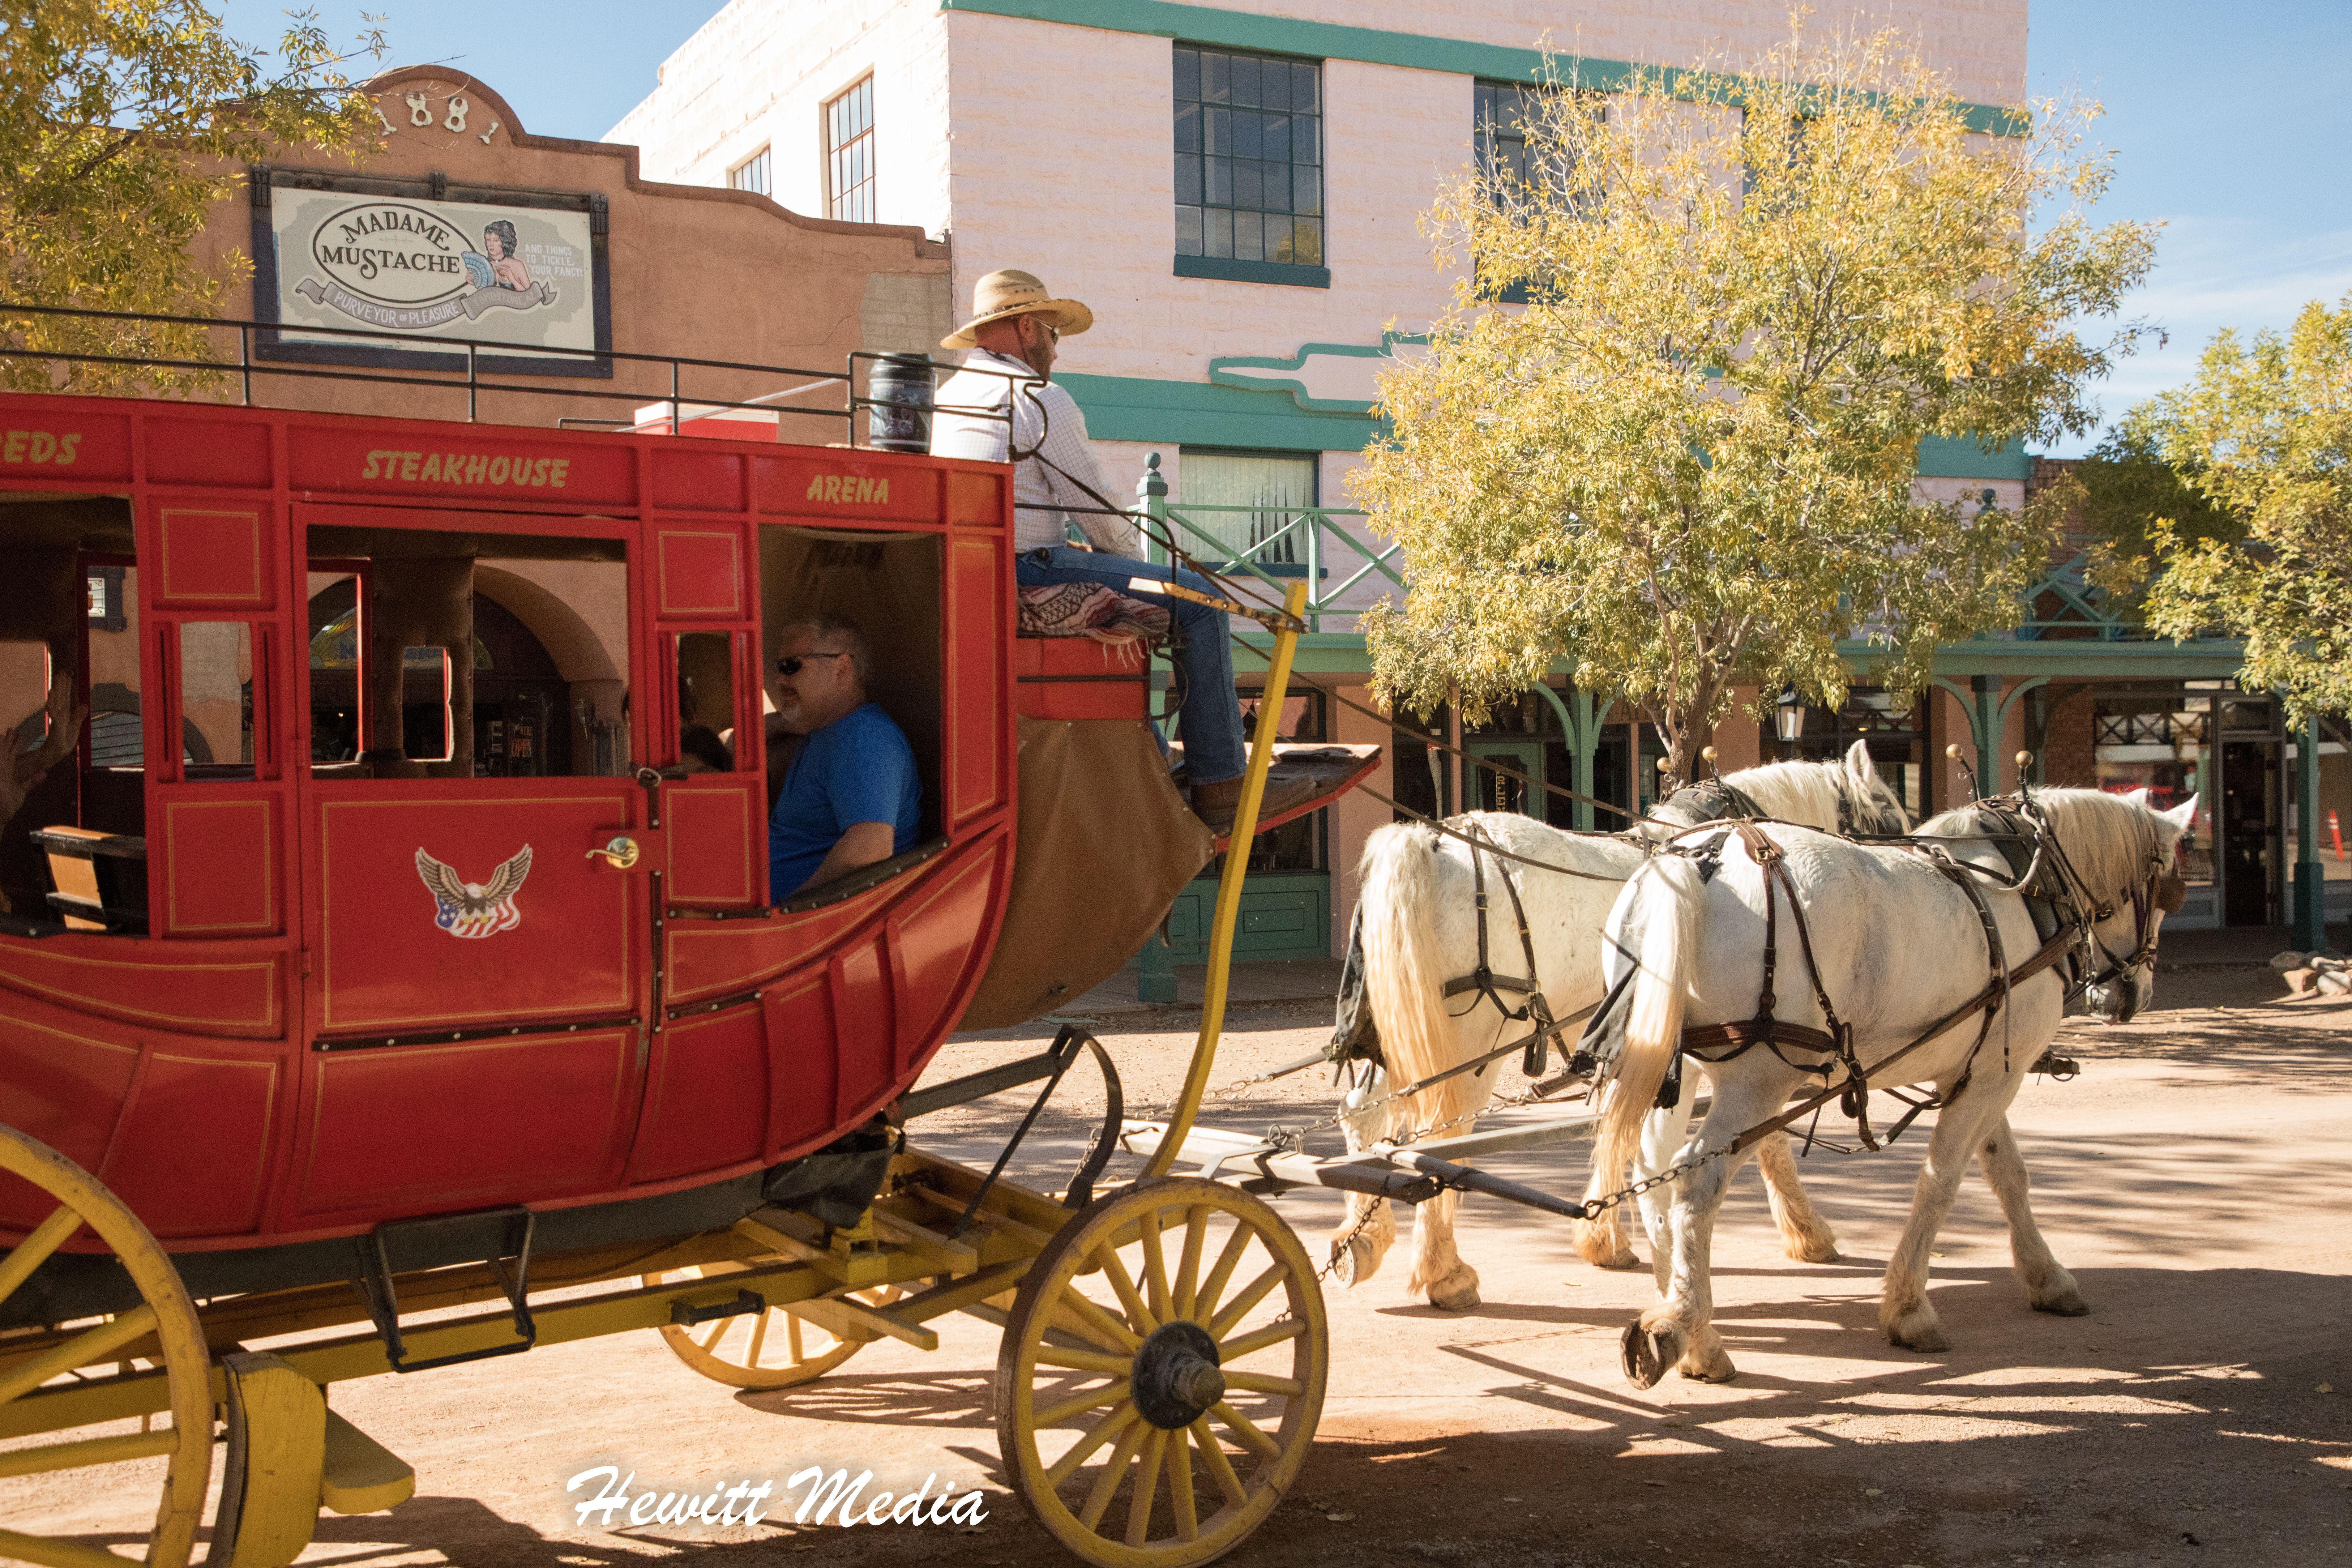 Tombstone A Carriage Ride In The Old West Town Of Tombstone Arizona The Town Was Made Famous By The Likes Of Wyatt Earp A Old West Town Old West West Town